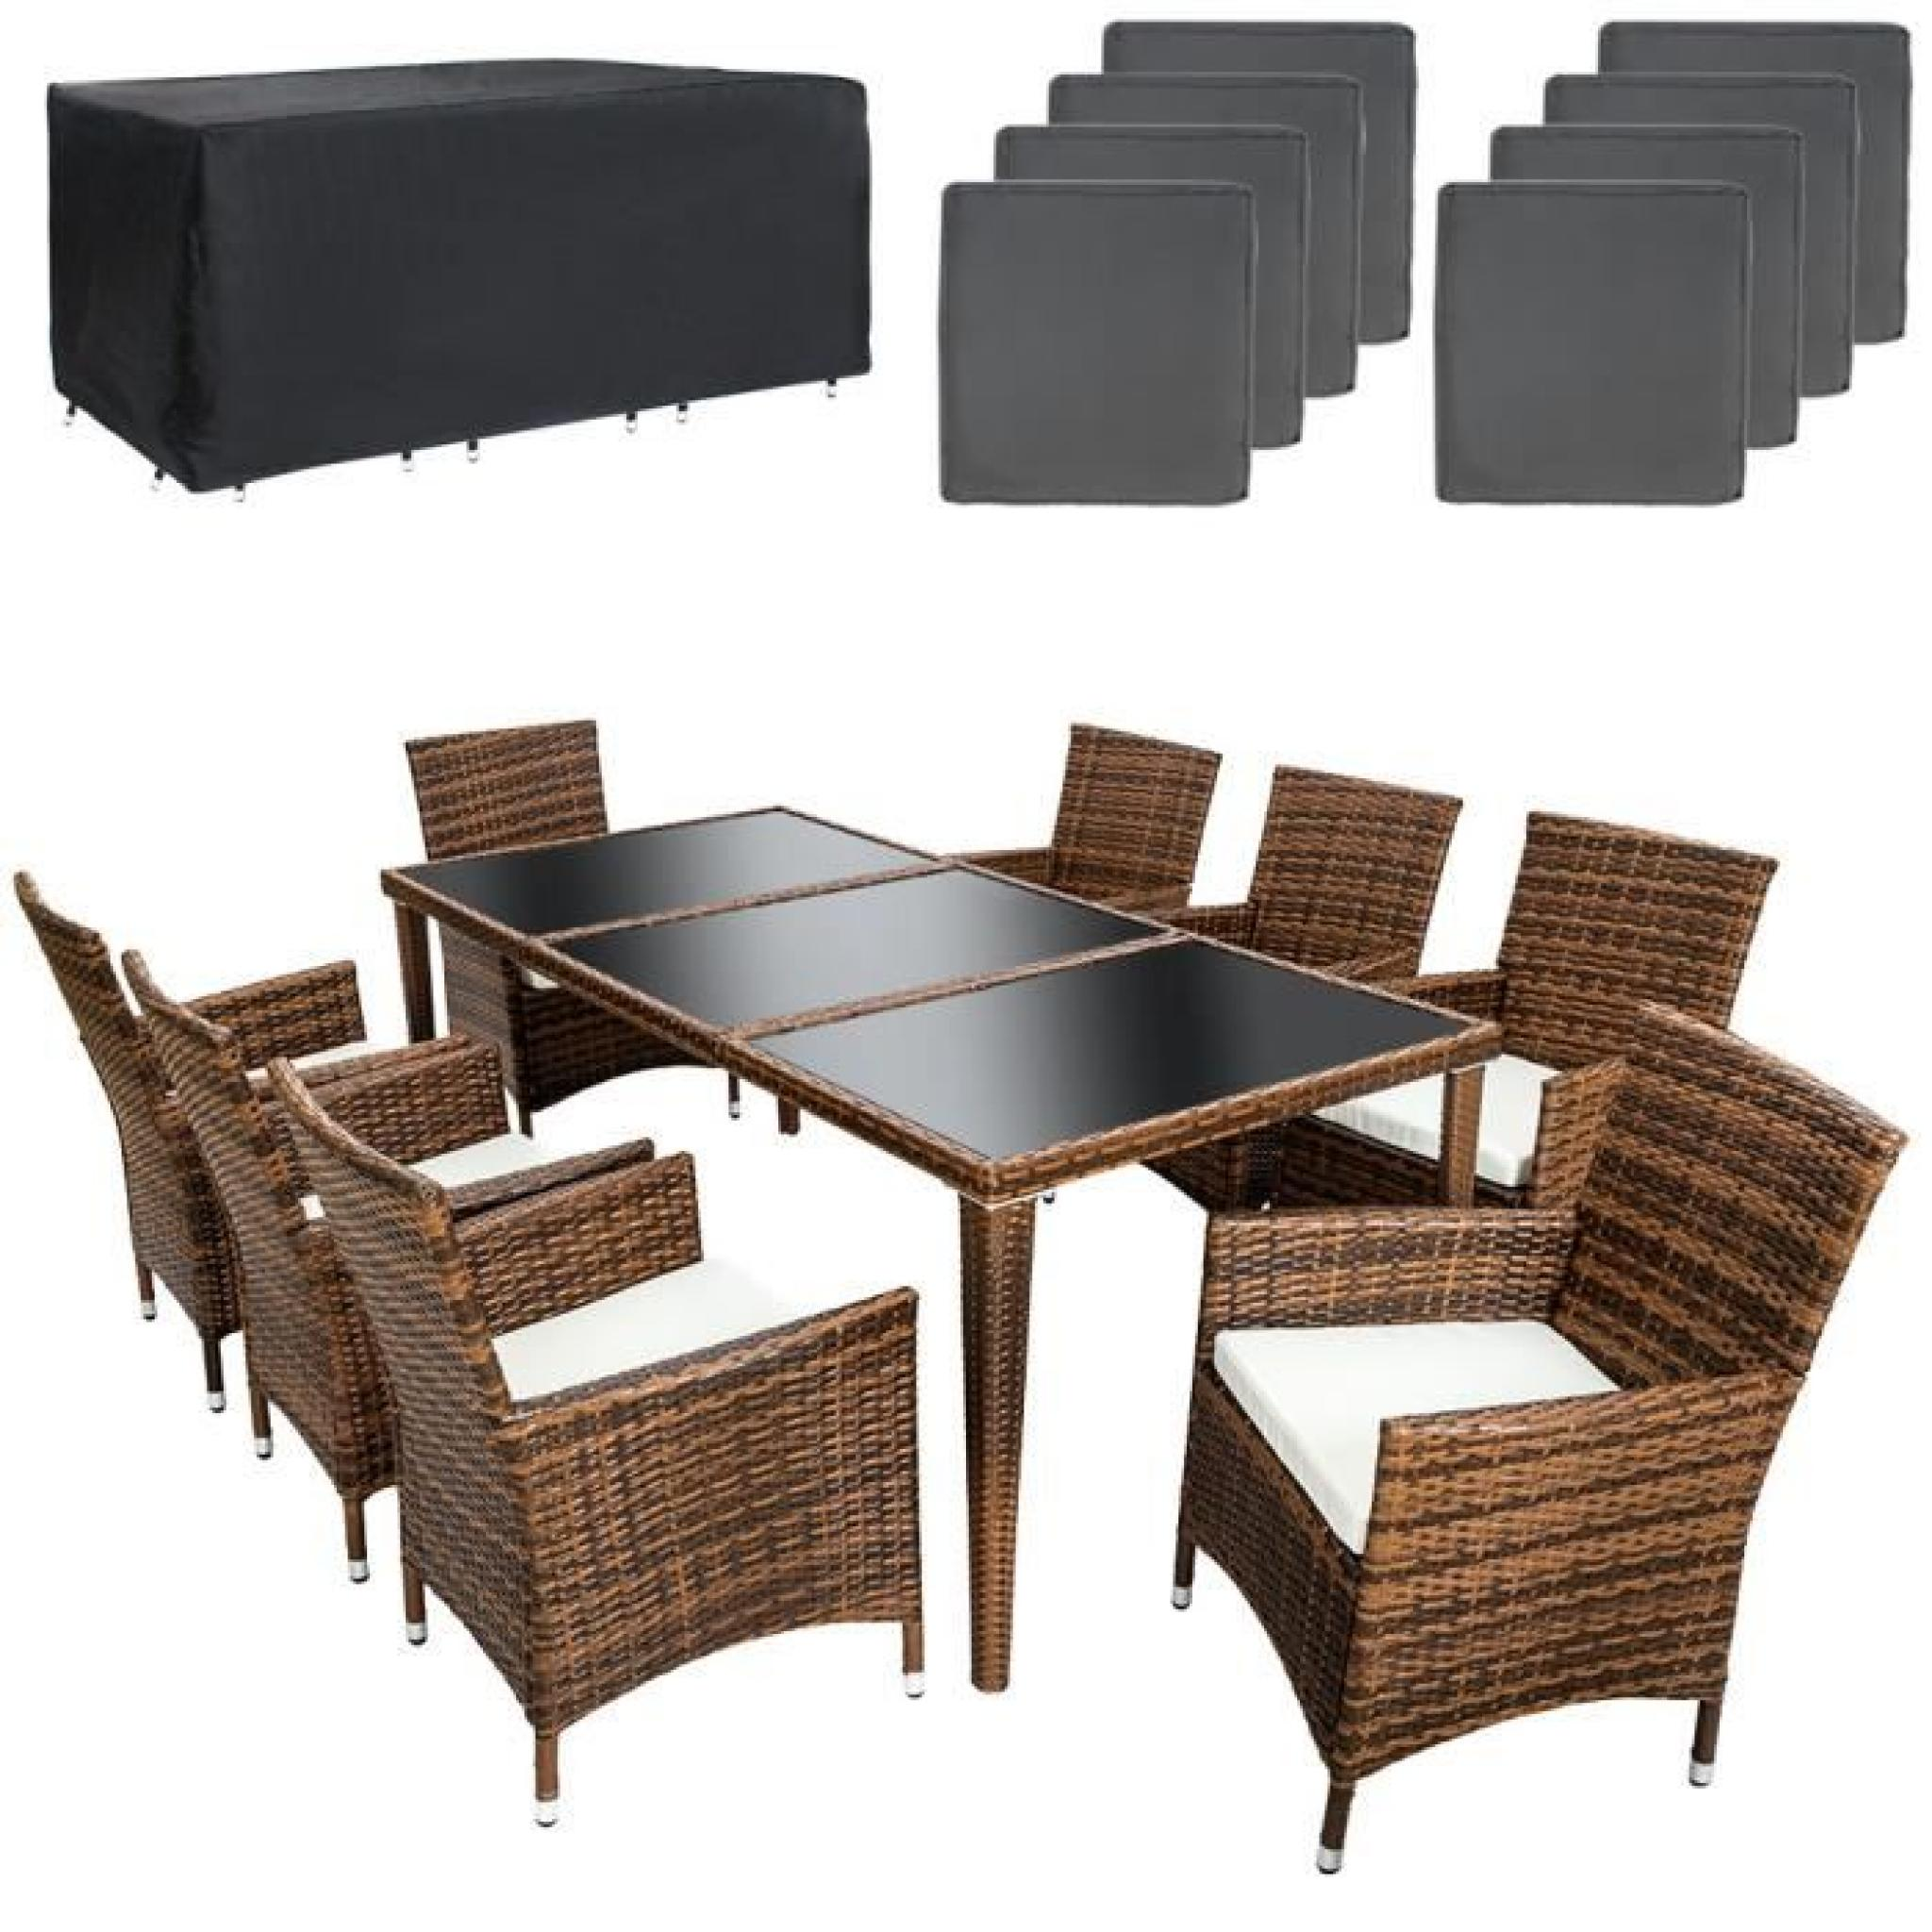 salon de jardin aluminium poly rotin 8 chaises fauteuils et 1 table 2 sets de housses inclus. Black Bedroom Furniture Sets. Home Design Ideas